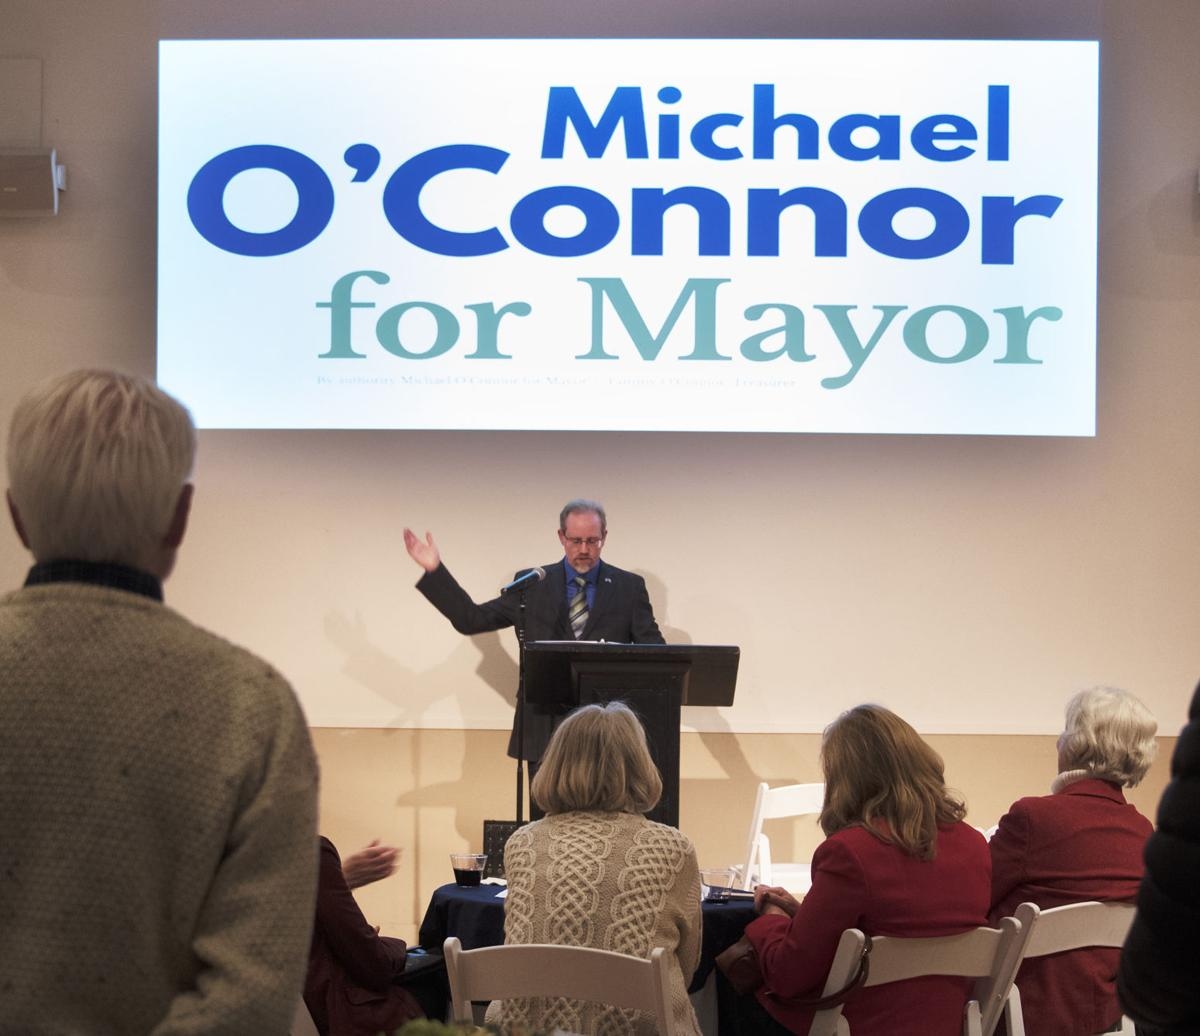 Michael O'Connor announces for mayor